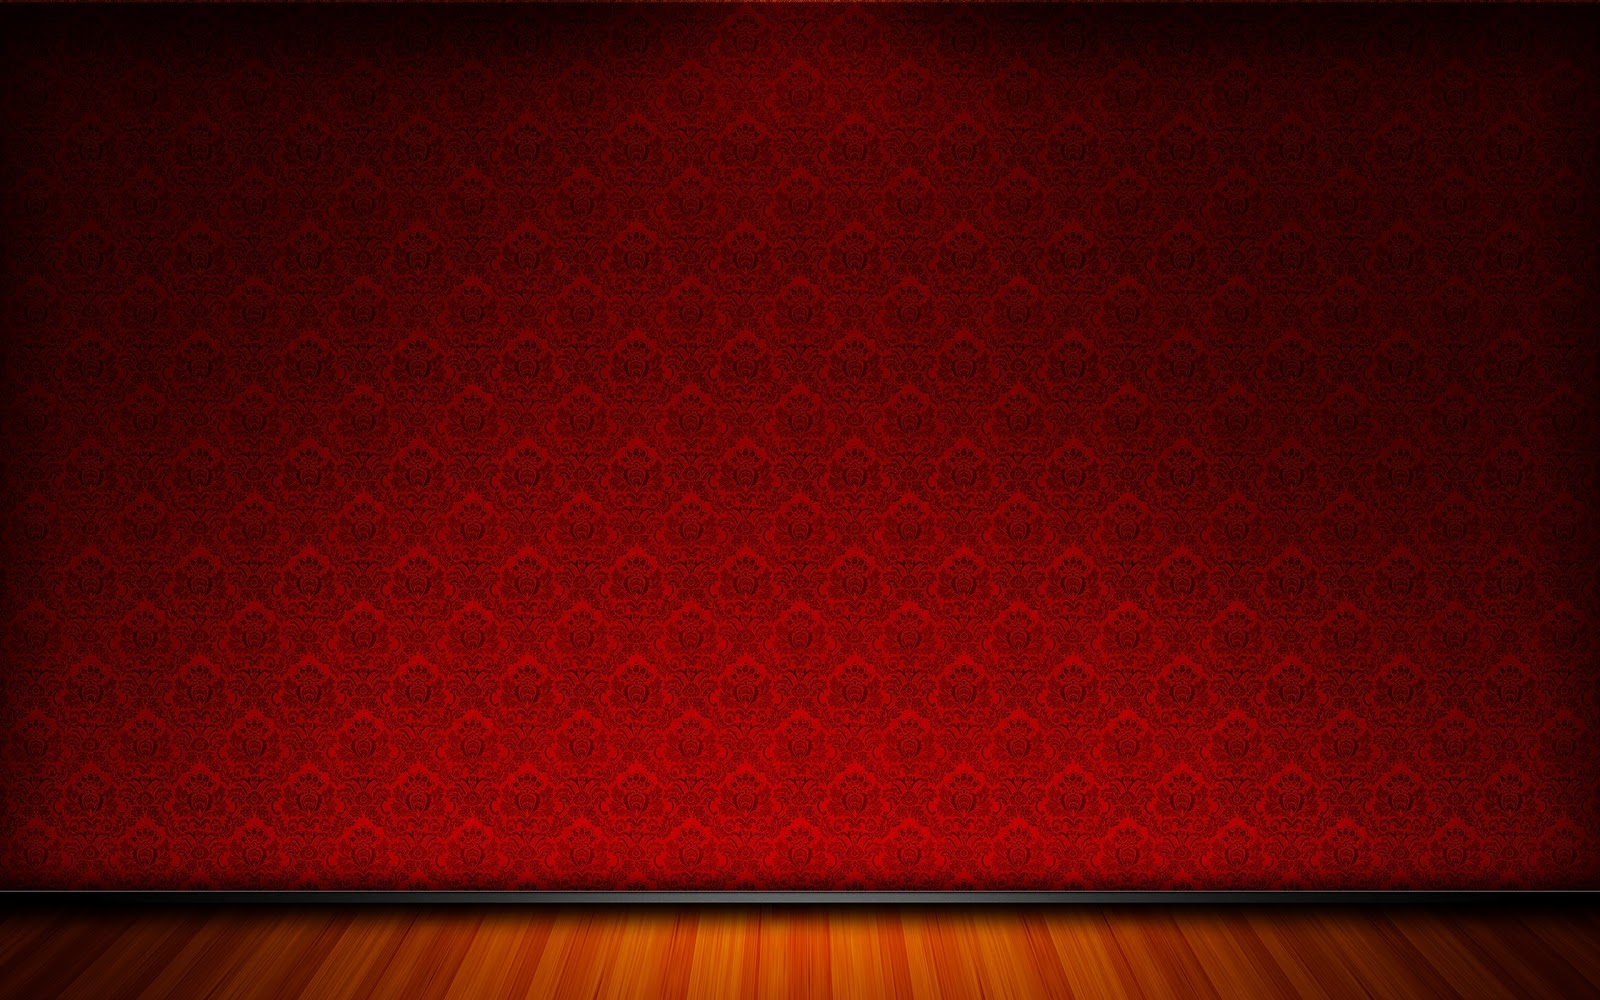 The Best Top Desktop Red Wallpapers Red Wallpaper Red Background Hd 11 Wallpaper